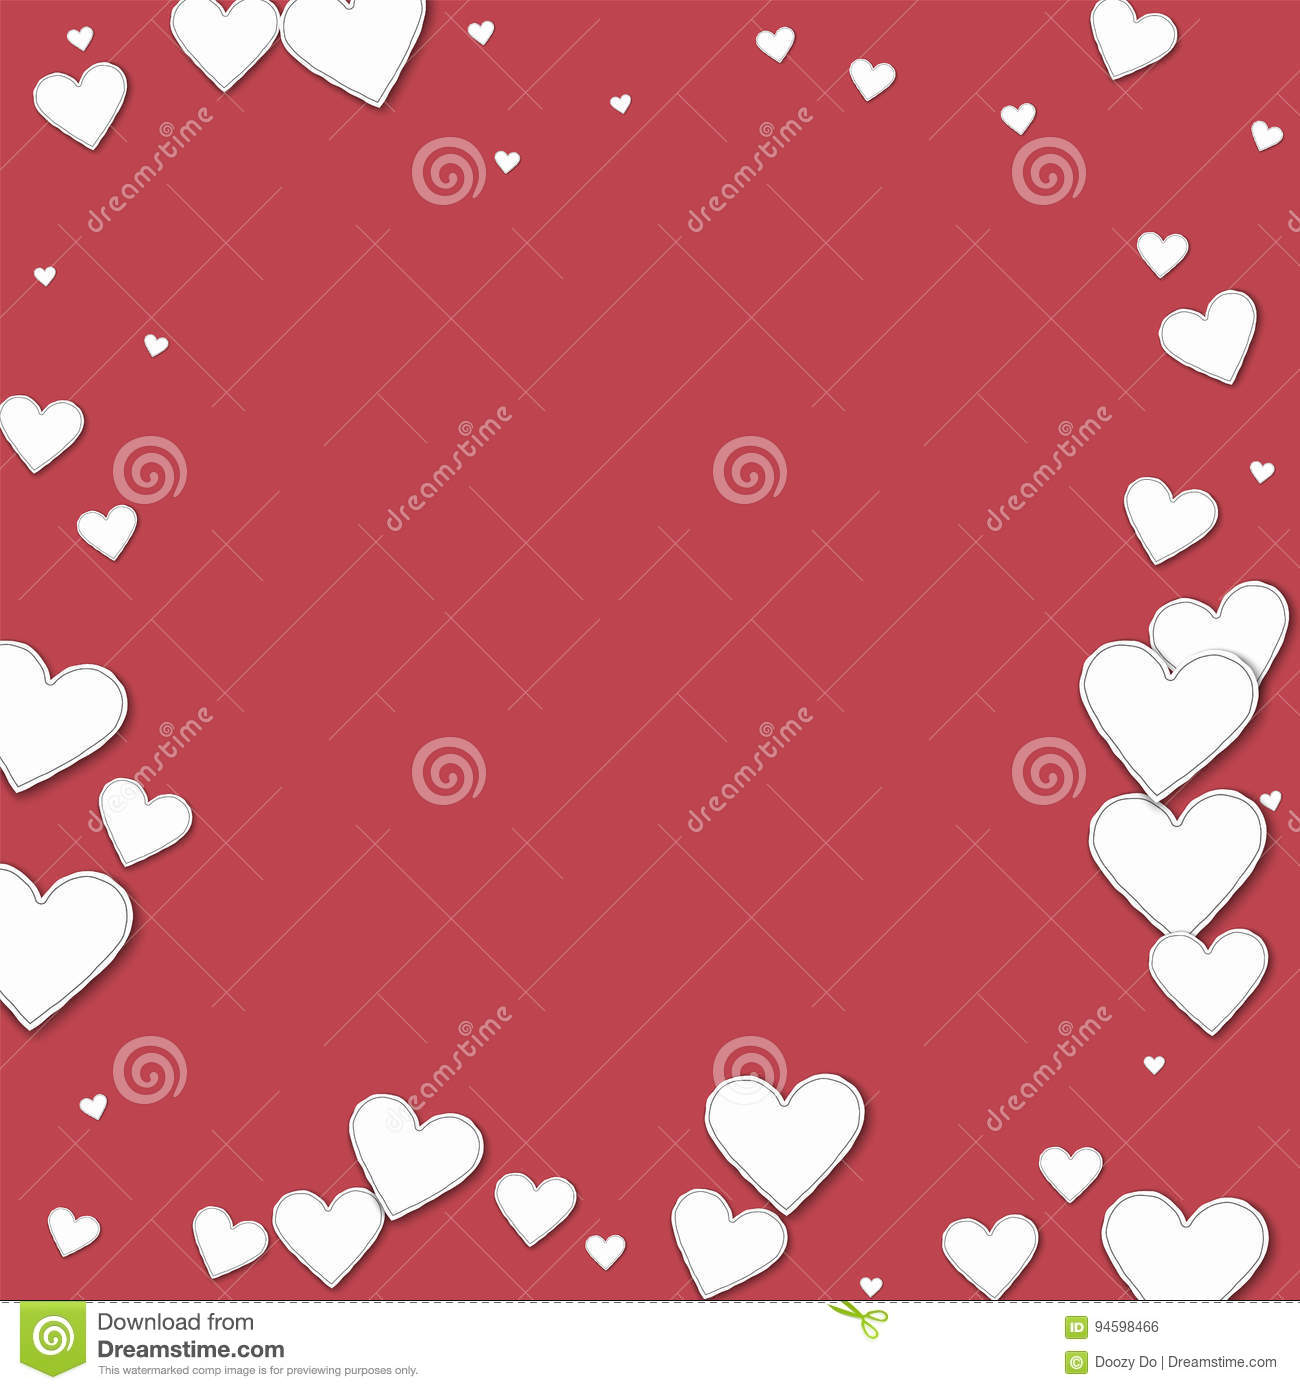 Cutout Paper Hearts Stock Vector Illustration Of Heart